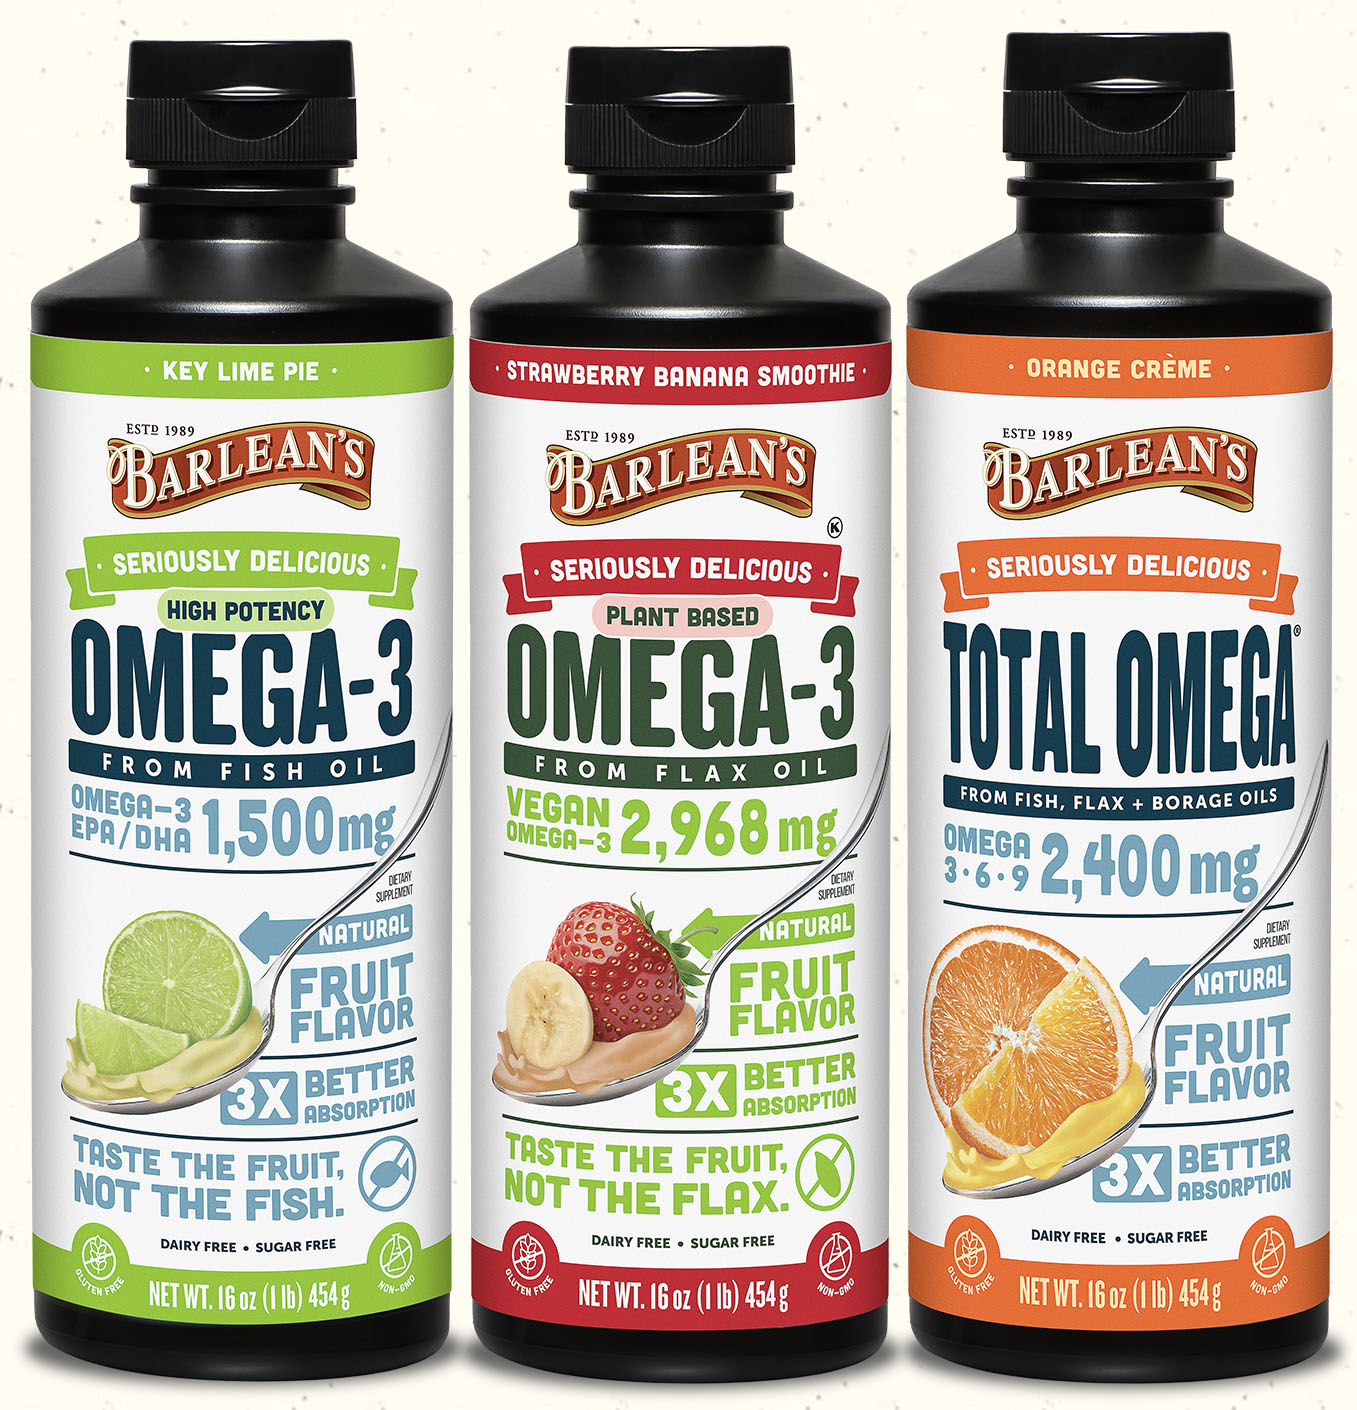 Seriously Delicious Omega-3 in key lime pie, strawberry banana smoothie, and orange creme flavors